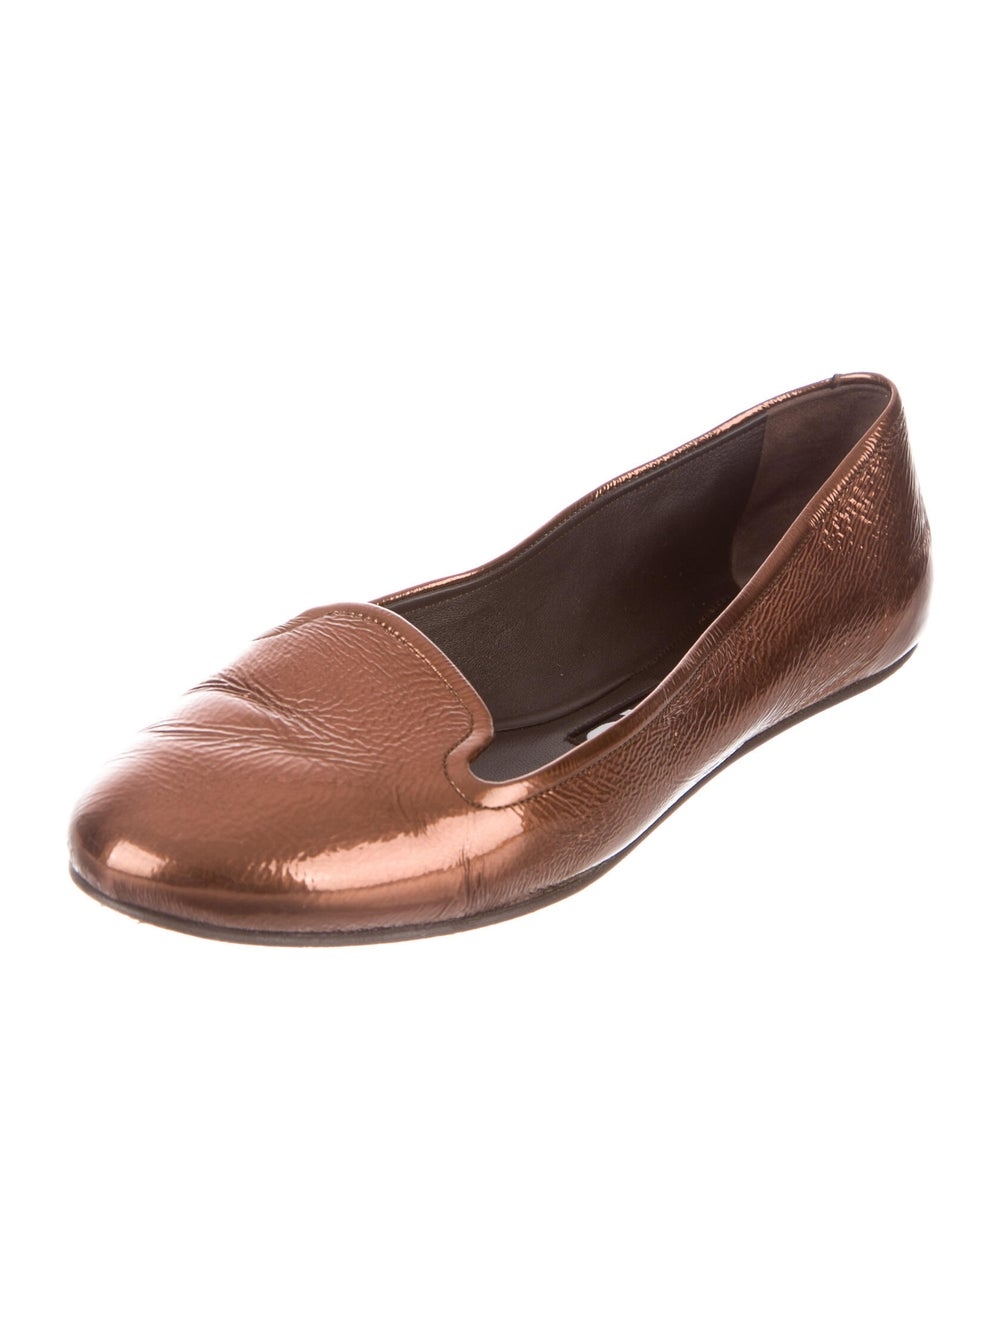 Rochas Leather Loafers Brown - image 2